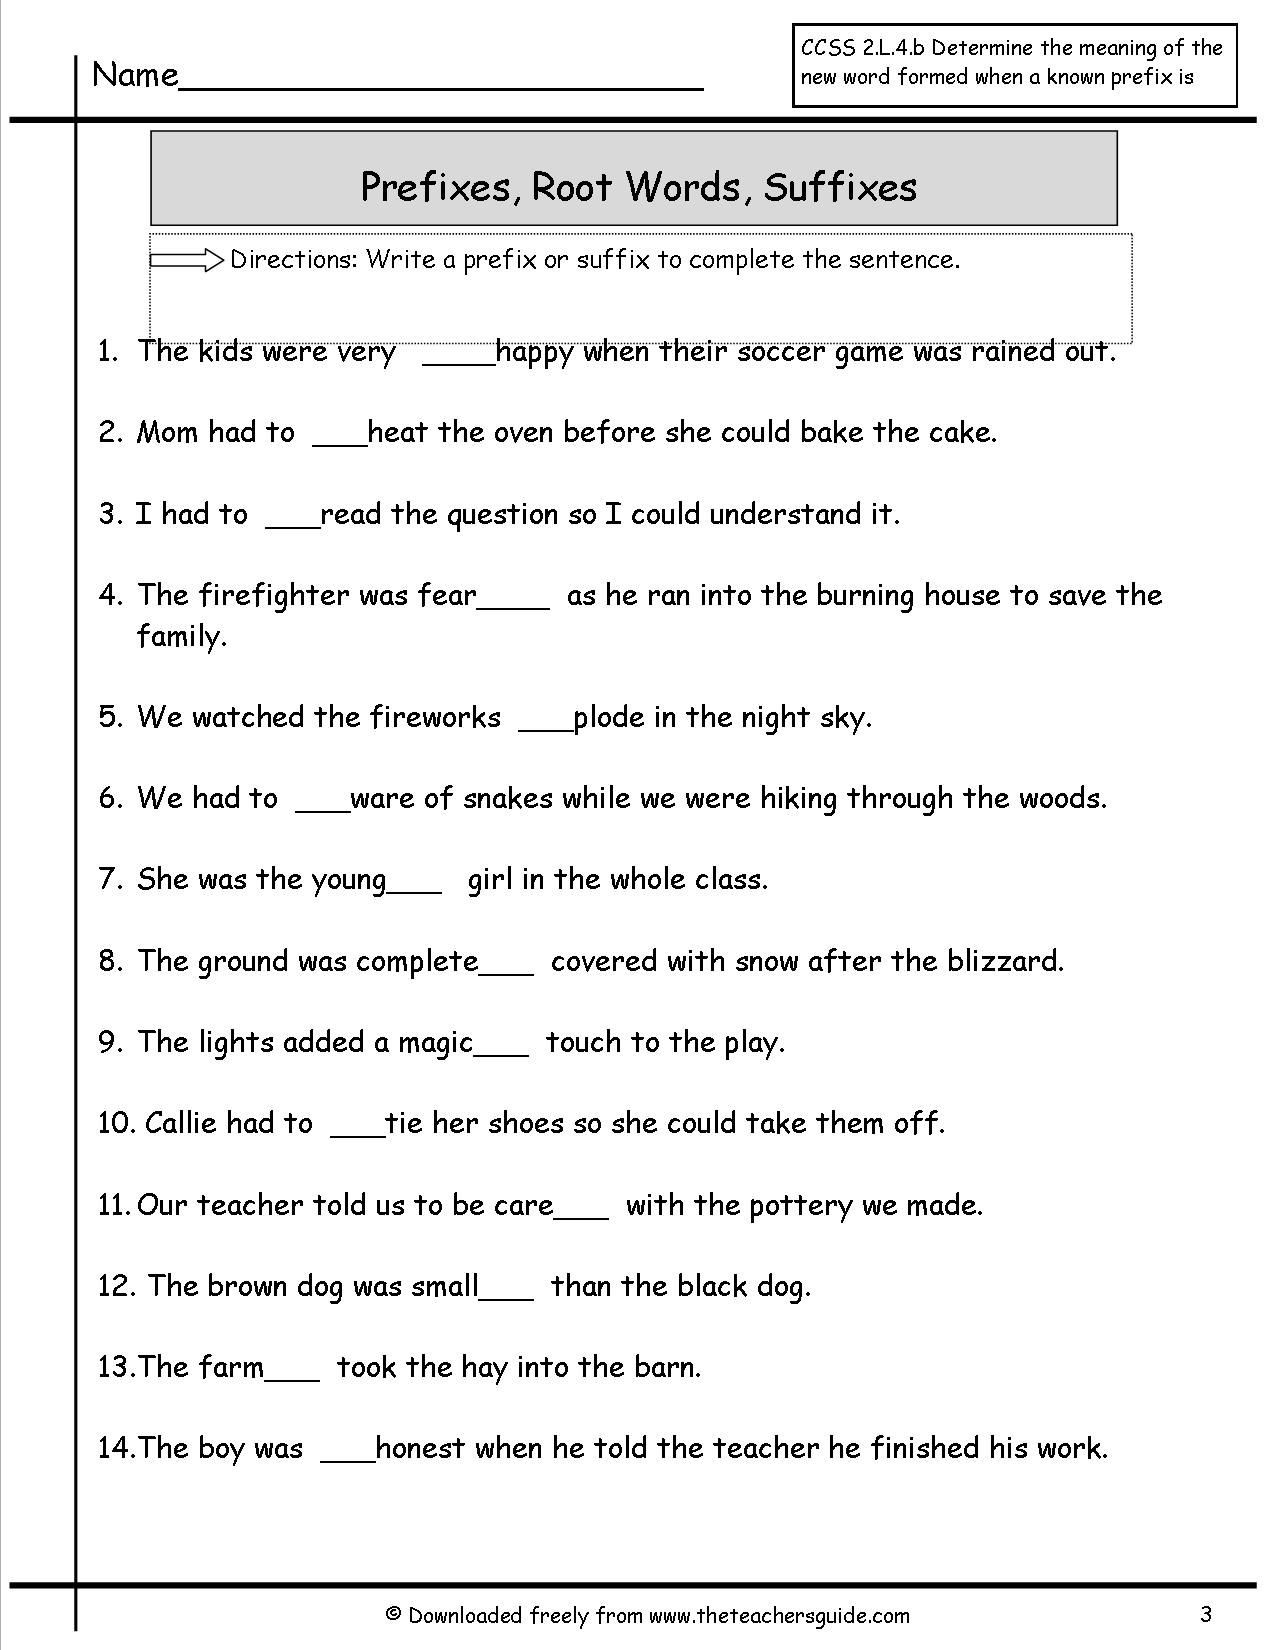 Prefix Suffix Worksheet 3rd Grade Prefixes Suffixes Worksheet